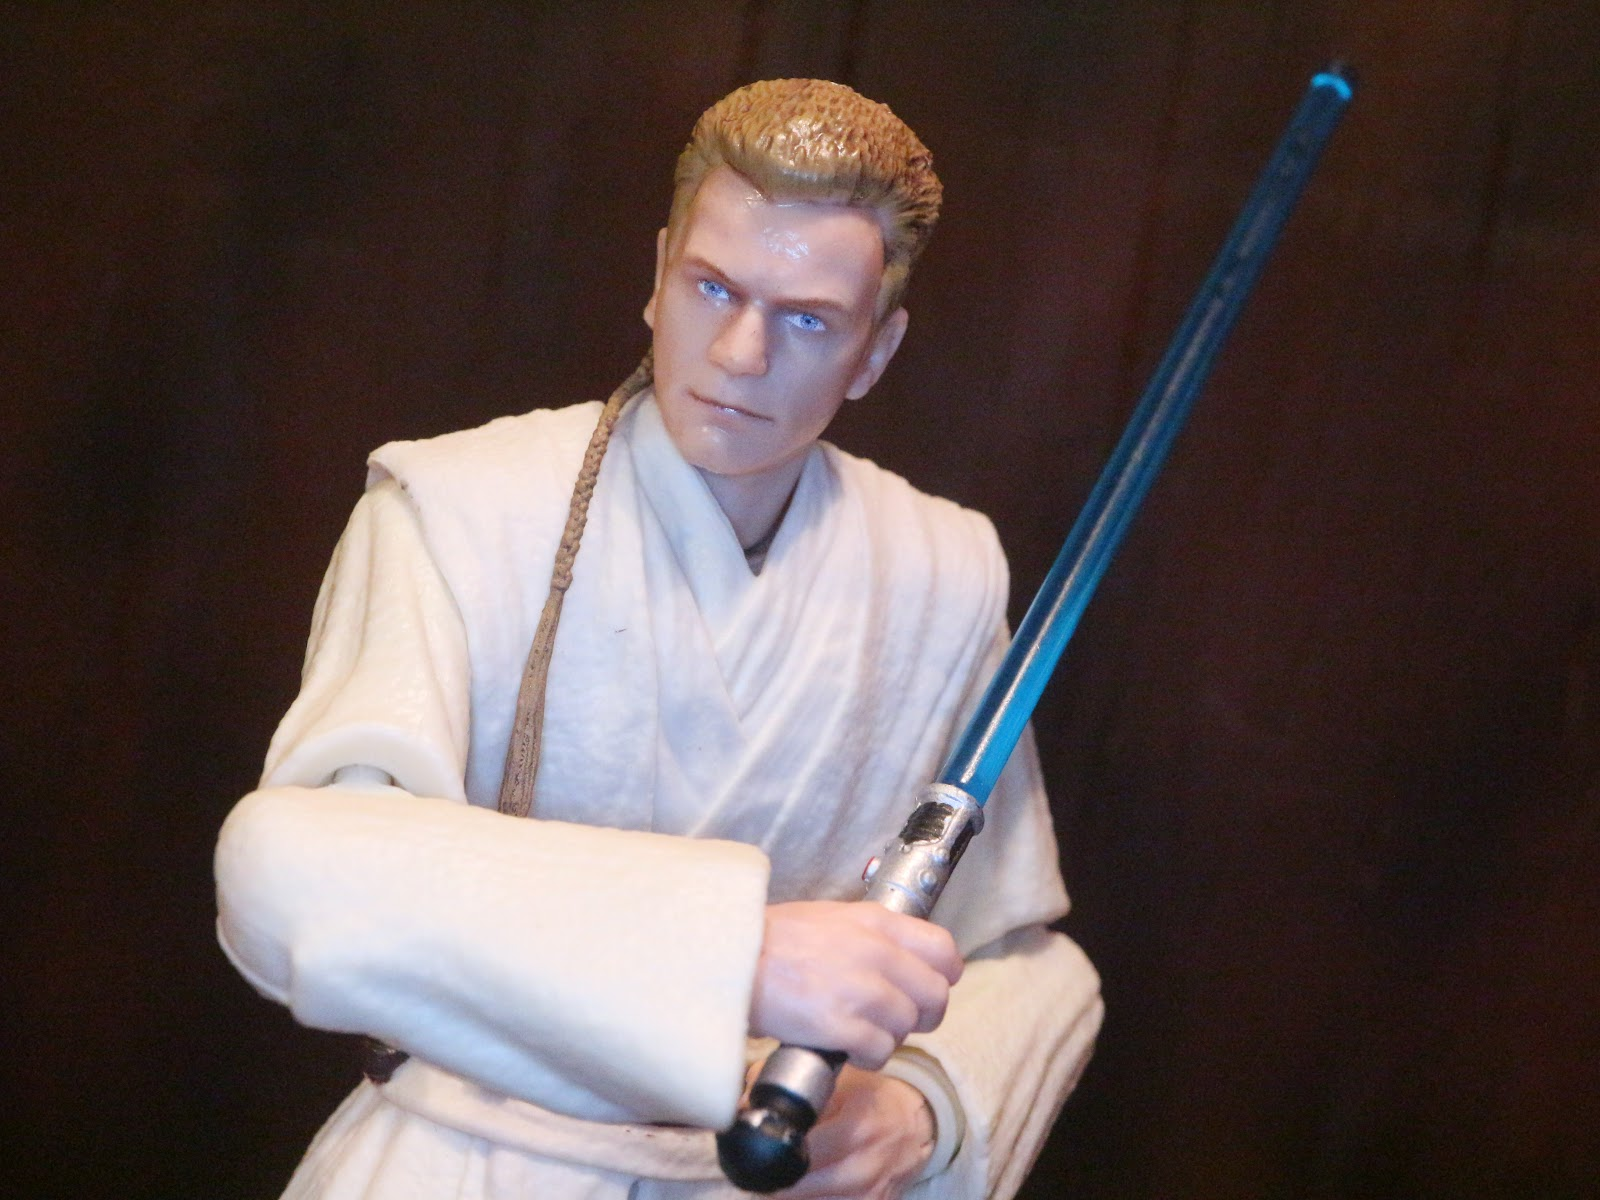 Action Figure Barbecue Action Figure Review Obi Wan Kenobi Padawan From Star Wars The Black Series Phase Iii By Hasbro